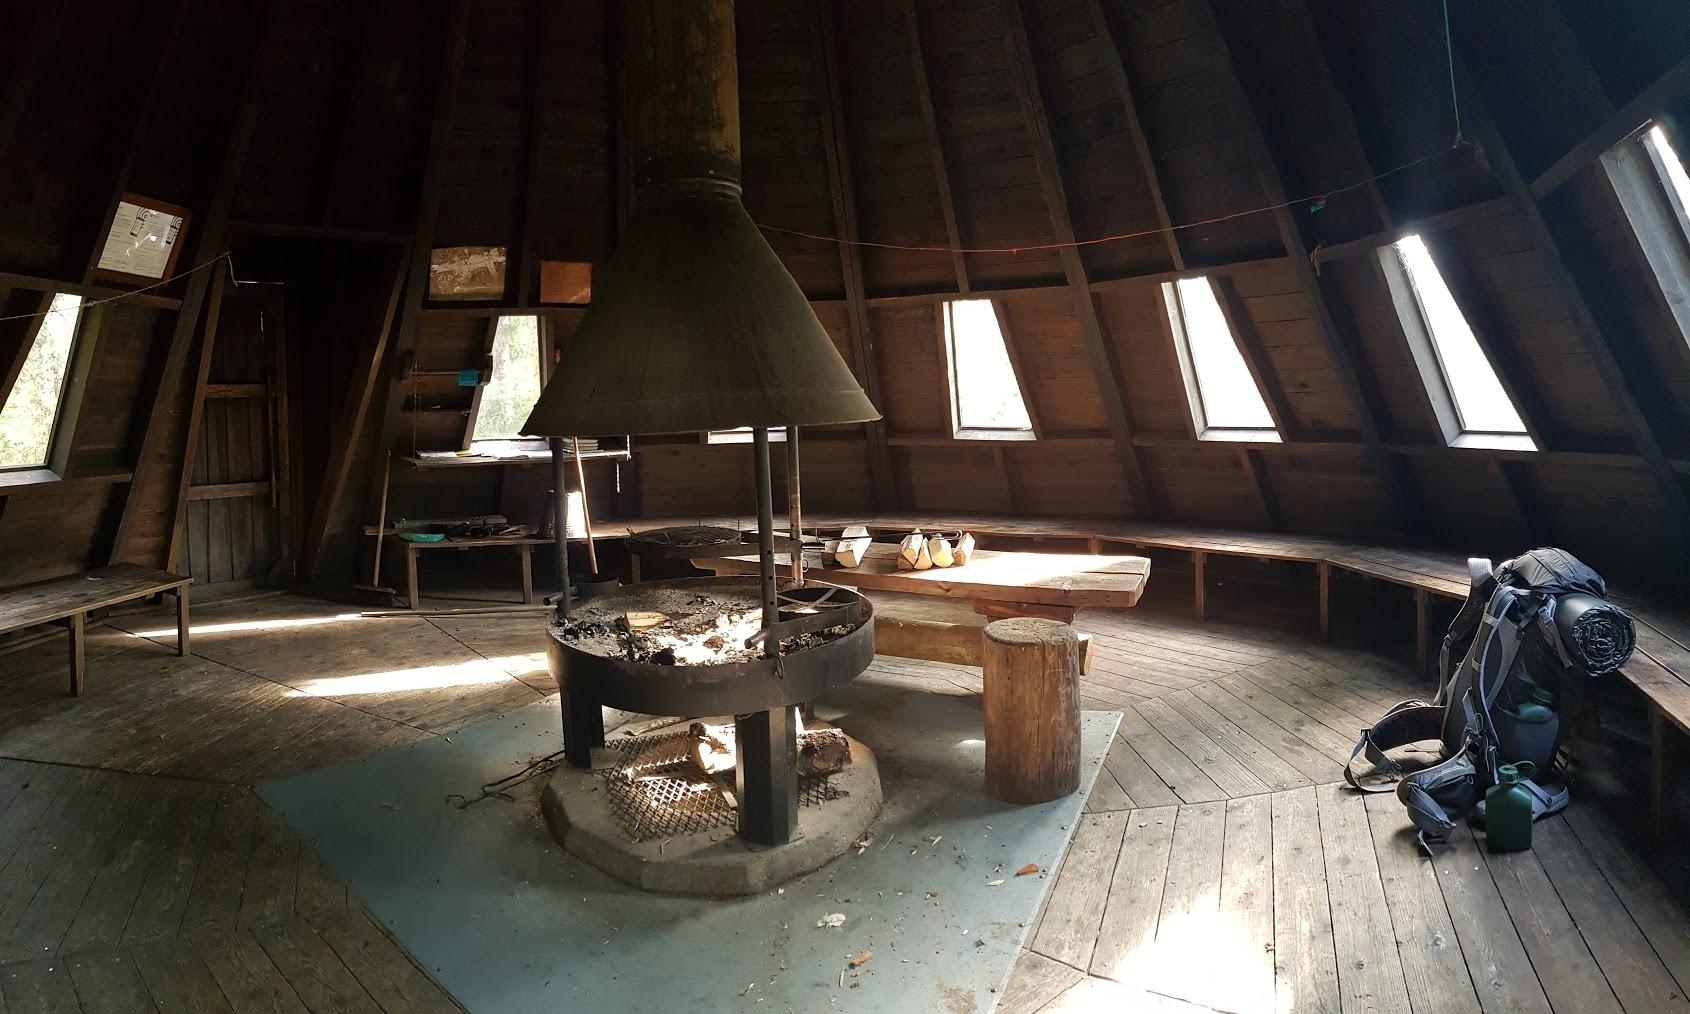 Inside a wooden teepee with a fireplace, a dining table and benches bordering the circular structure.